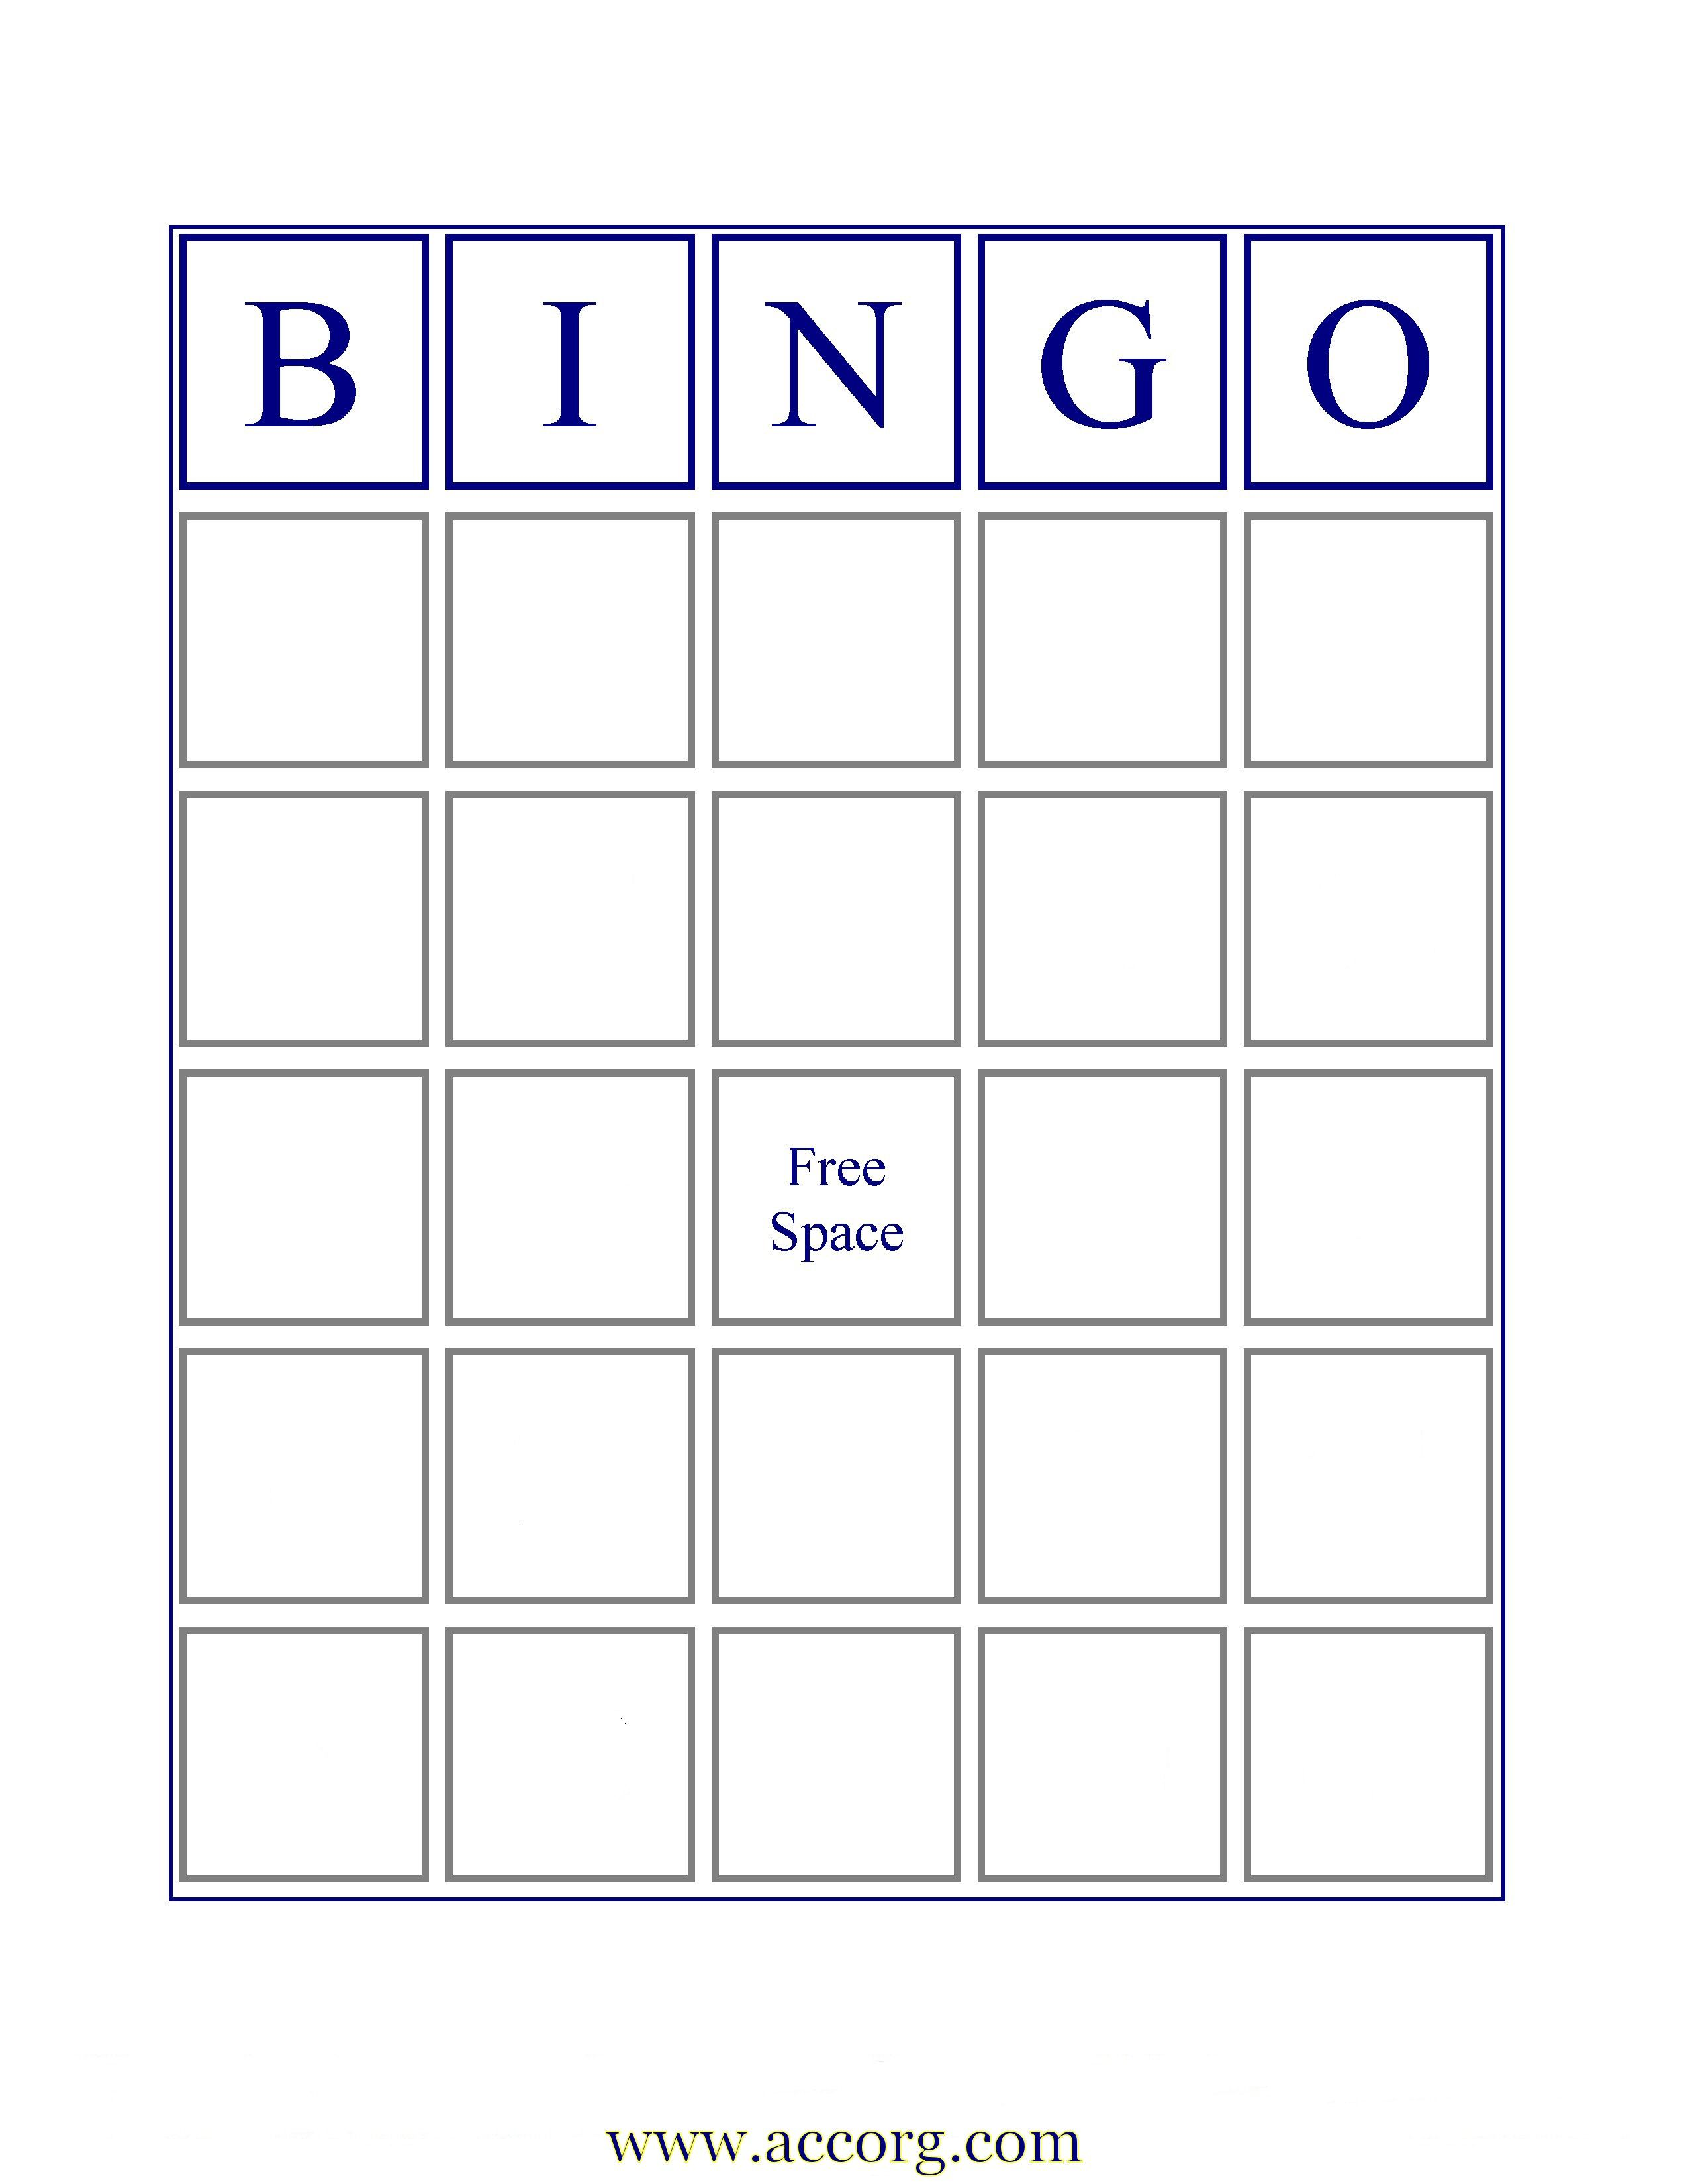 worksheet Bingo Worksheet blank bingo cards if you want an image of a standard card with b i n g o